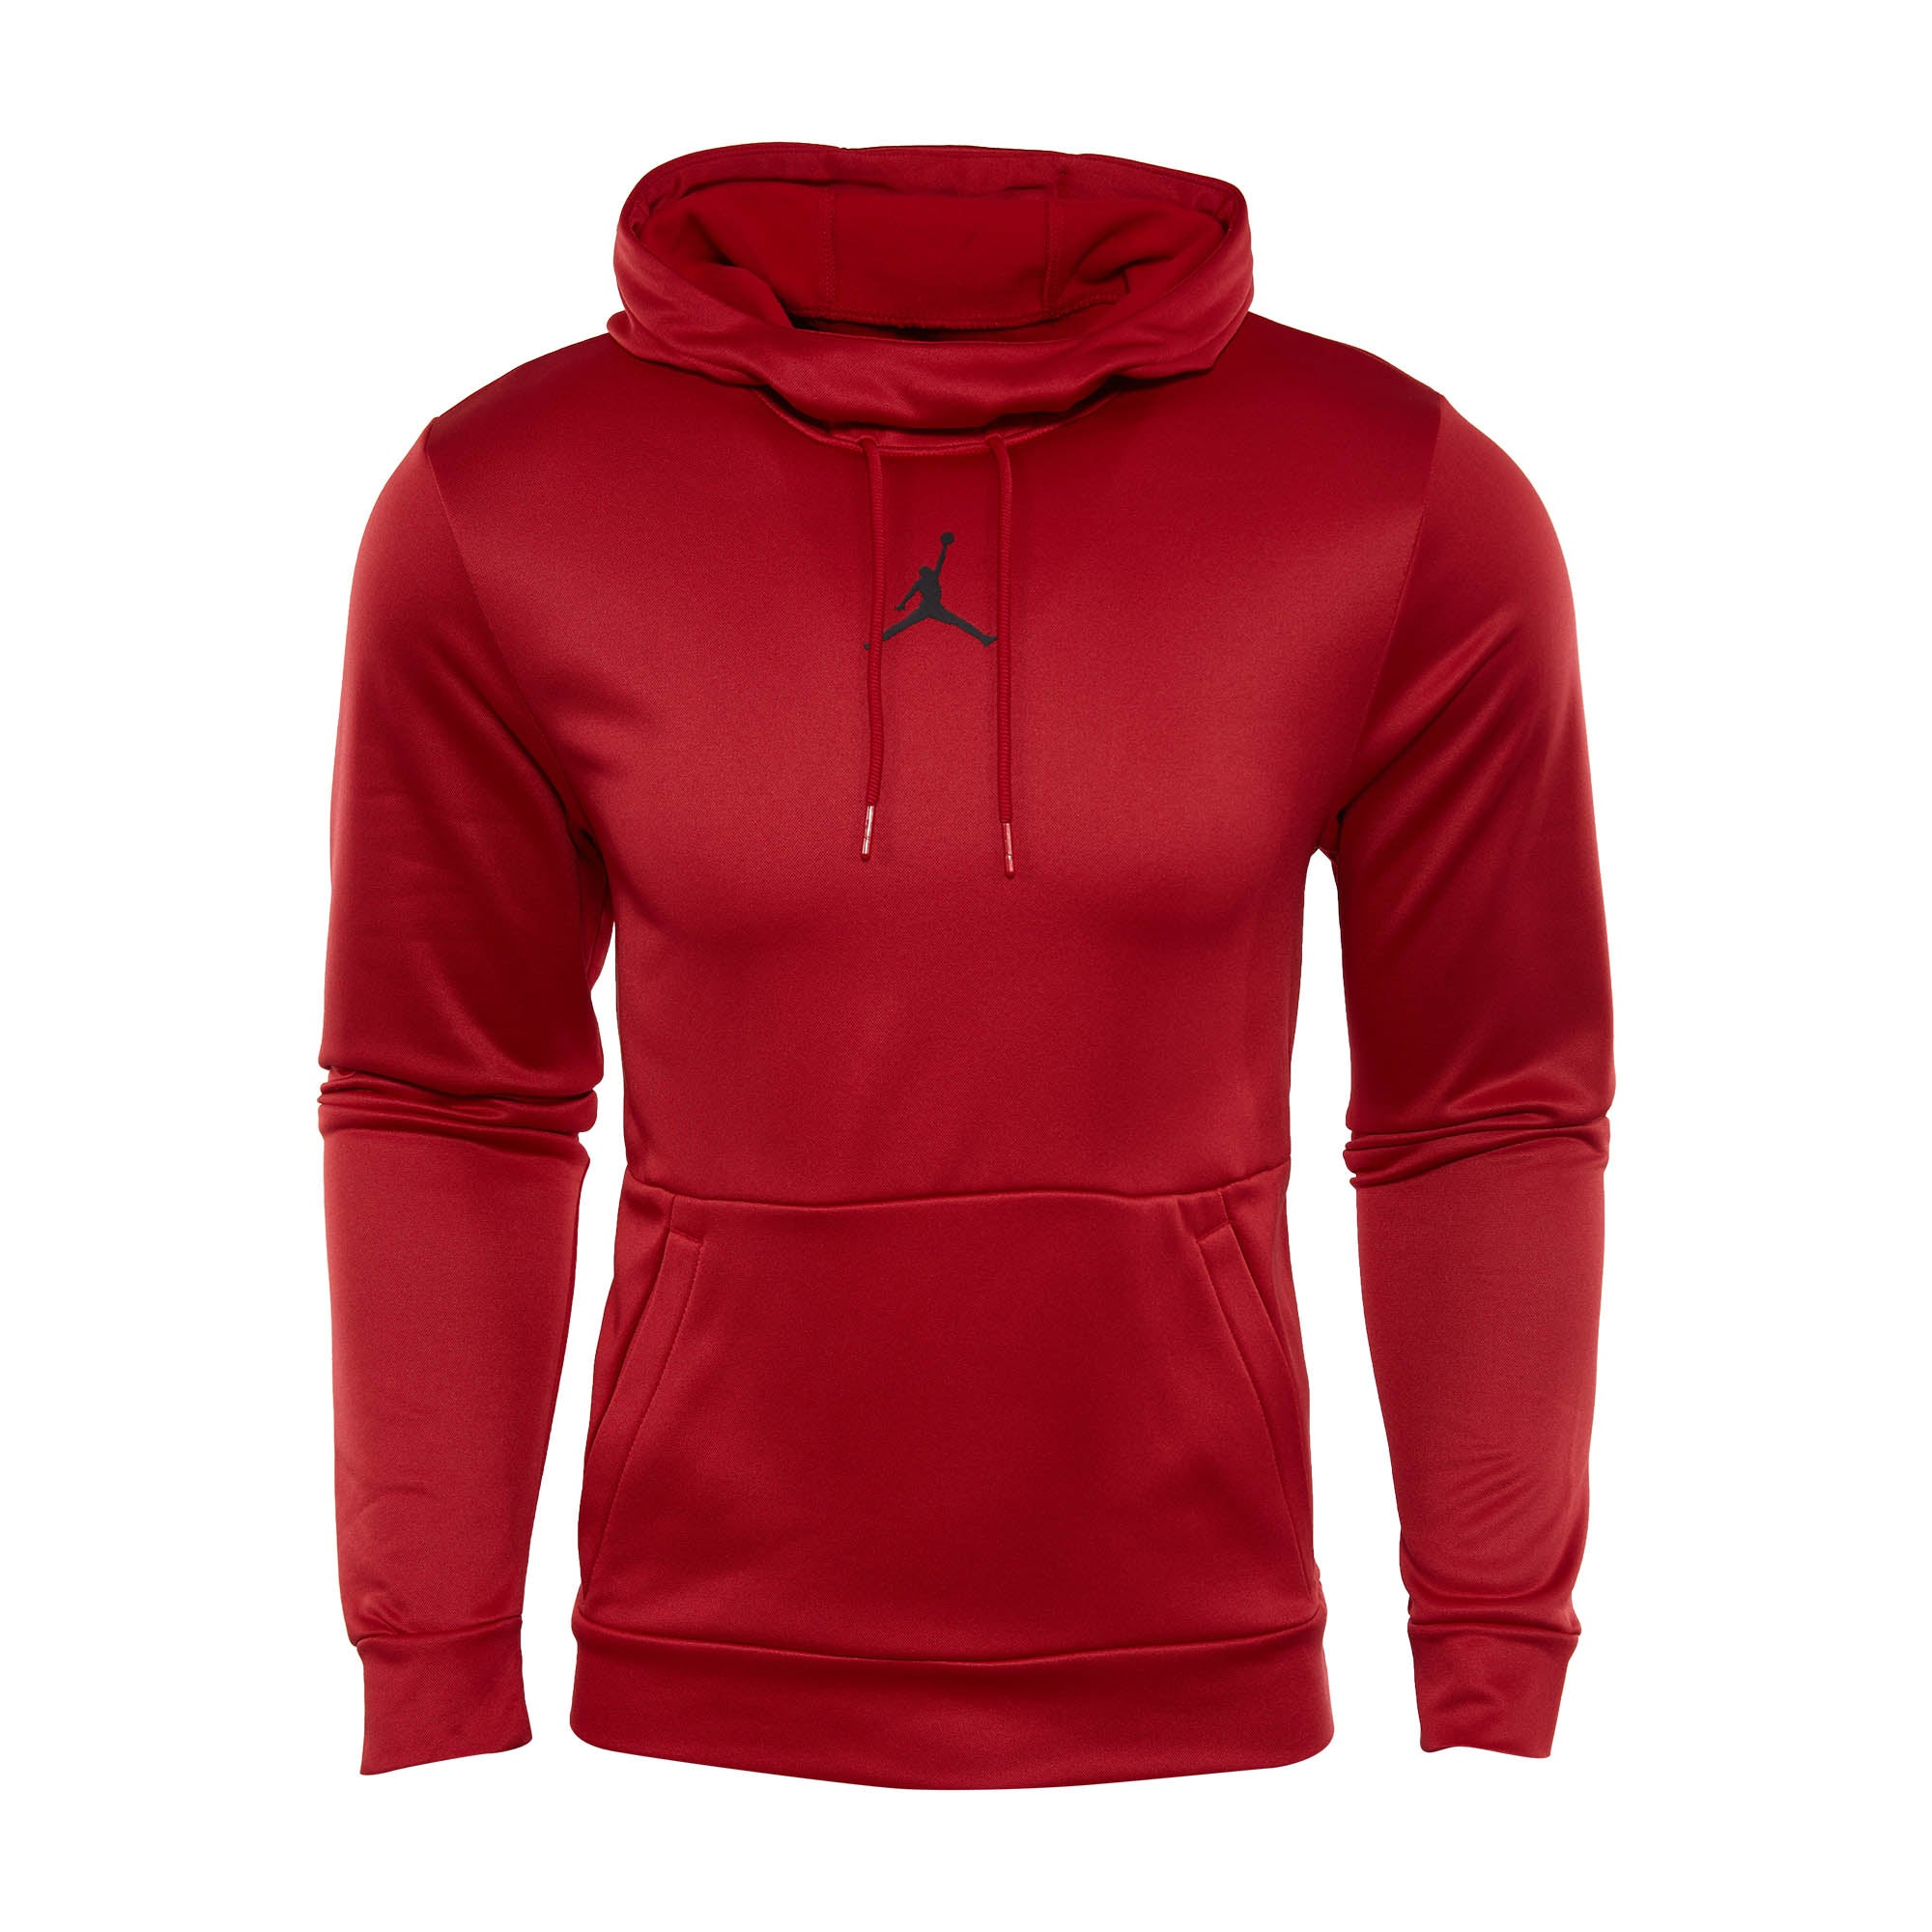 5edc991e343c Jordan 23 Alpha Therma Pullover Hoodie Mens Style   861559 – TheEagleShoes